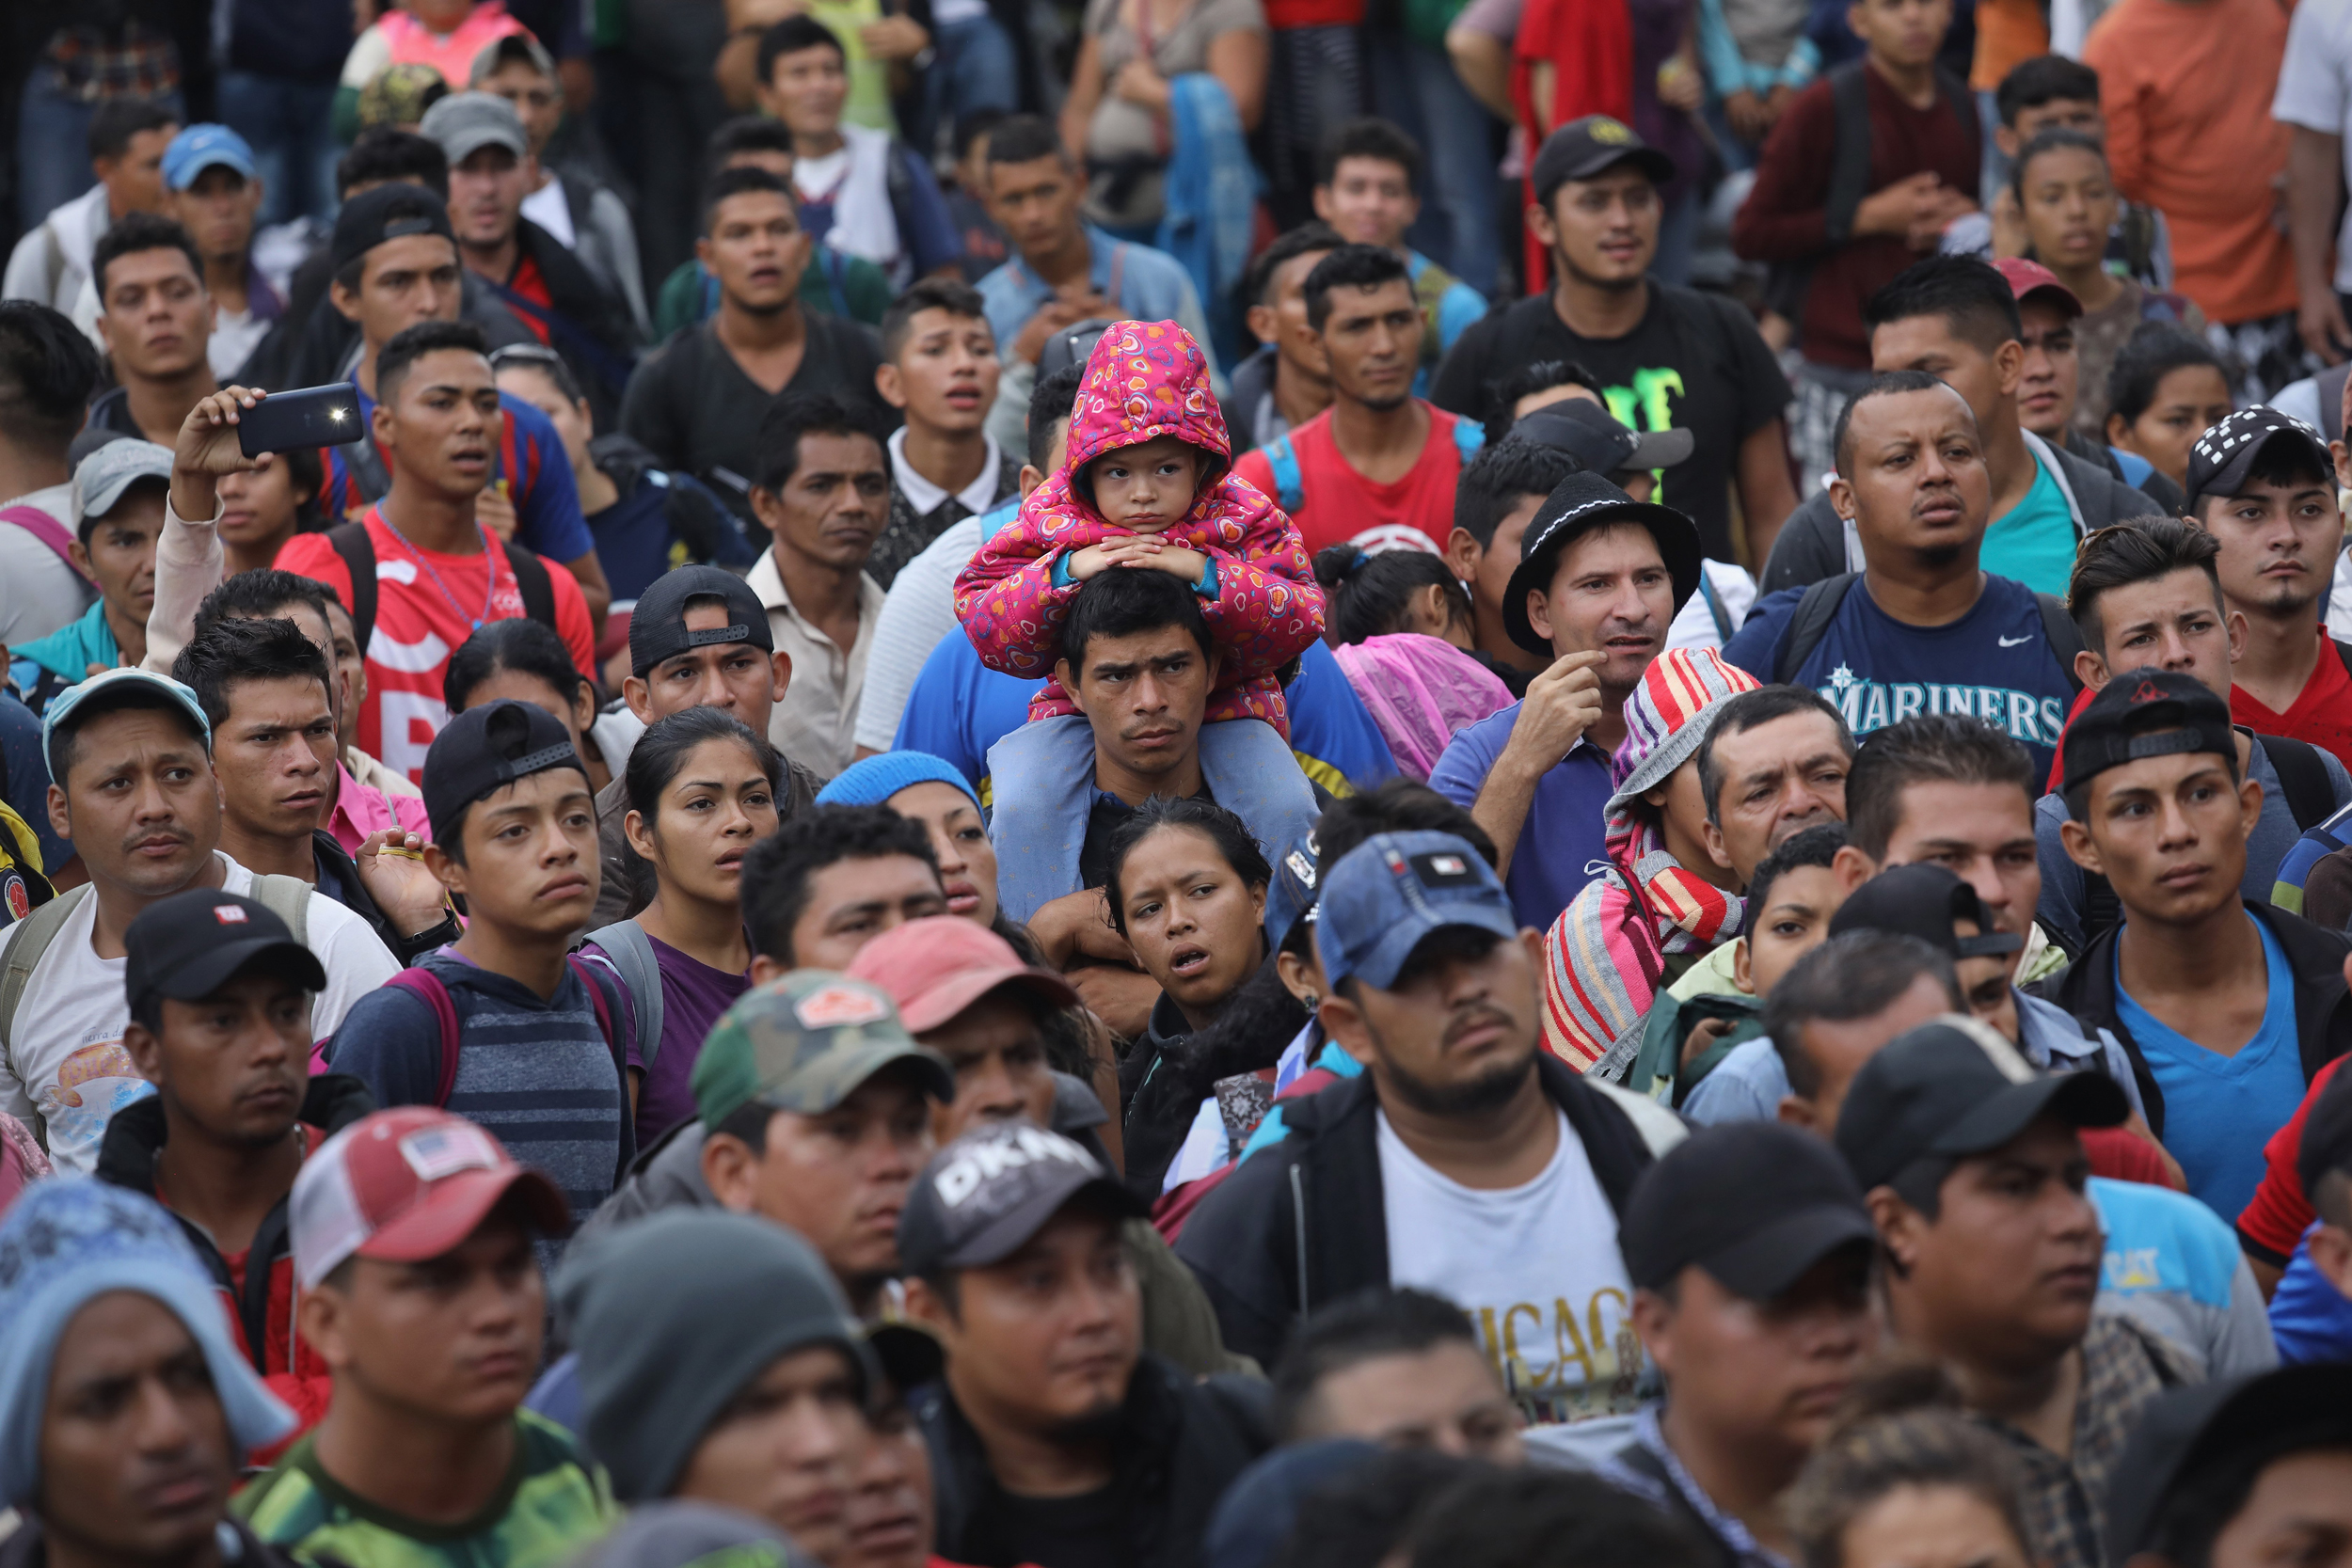 First Group From Honduran Caravan Crosses Into Mexico Testing President Trump S Red Line